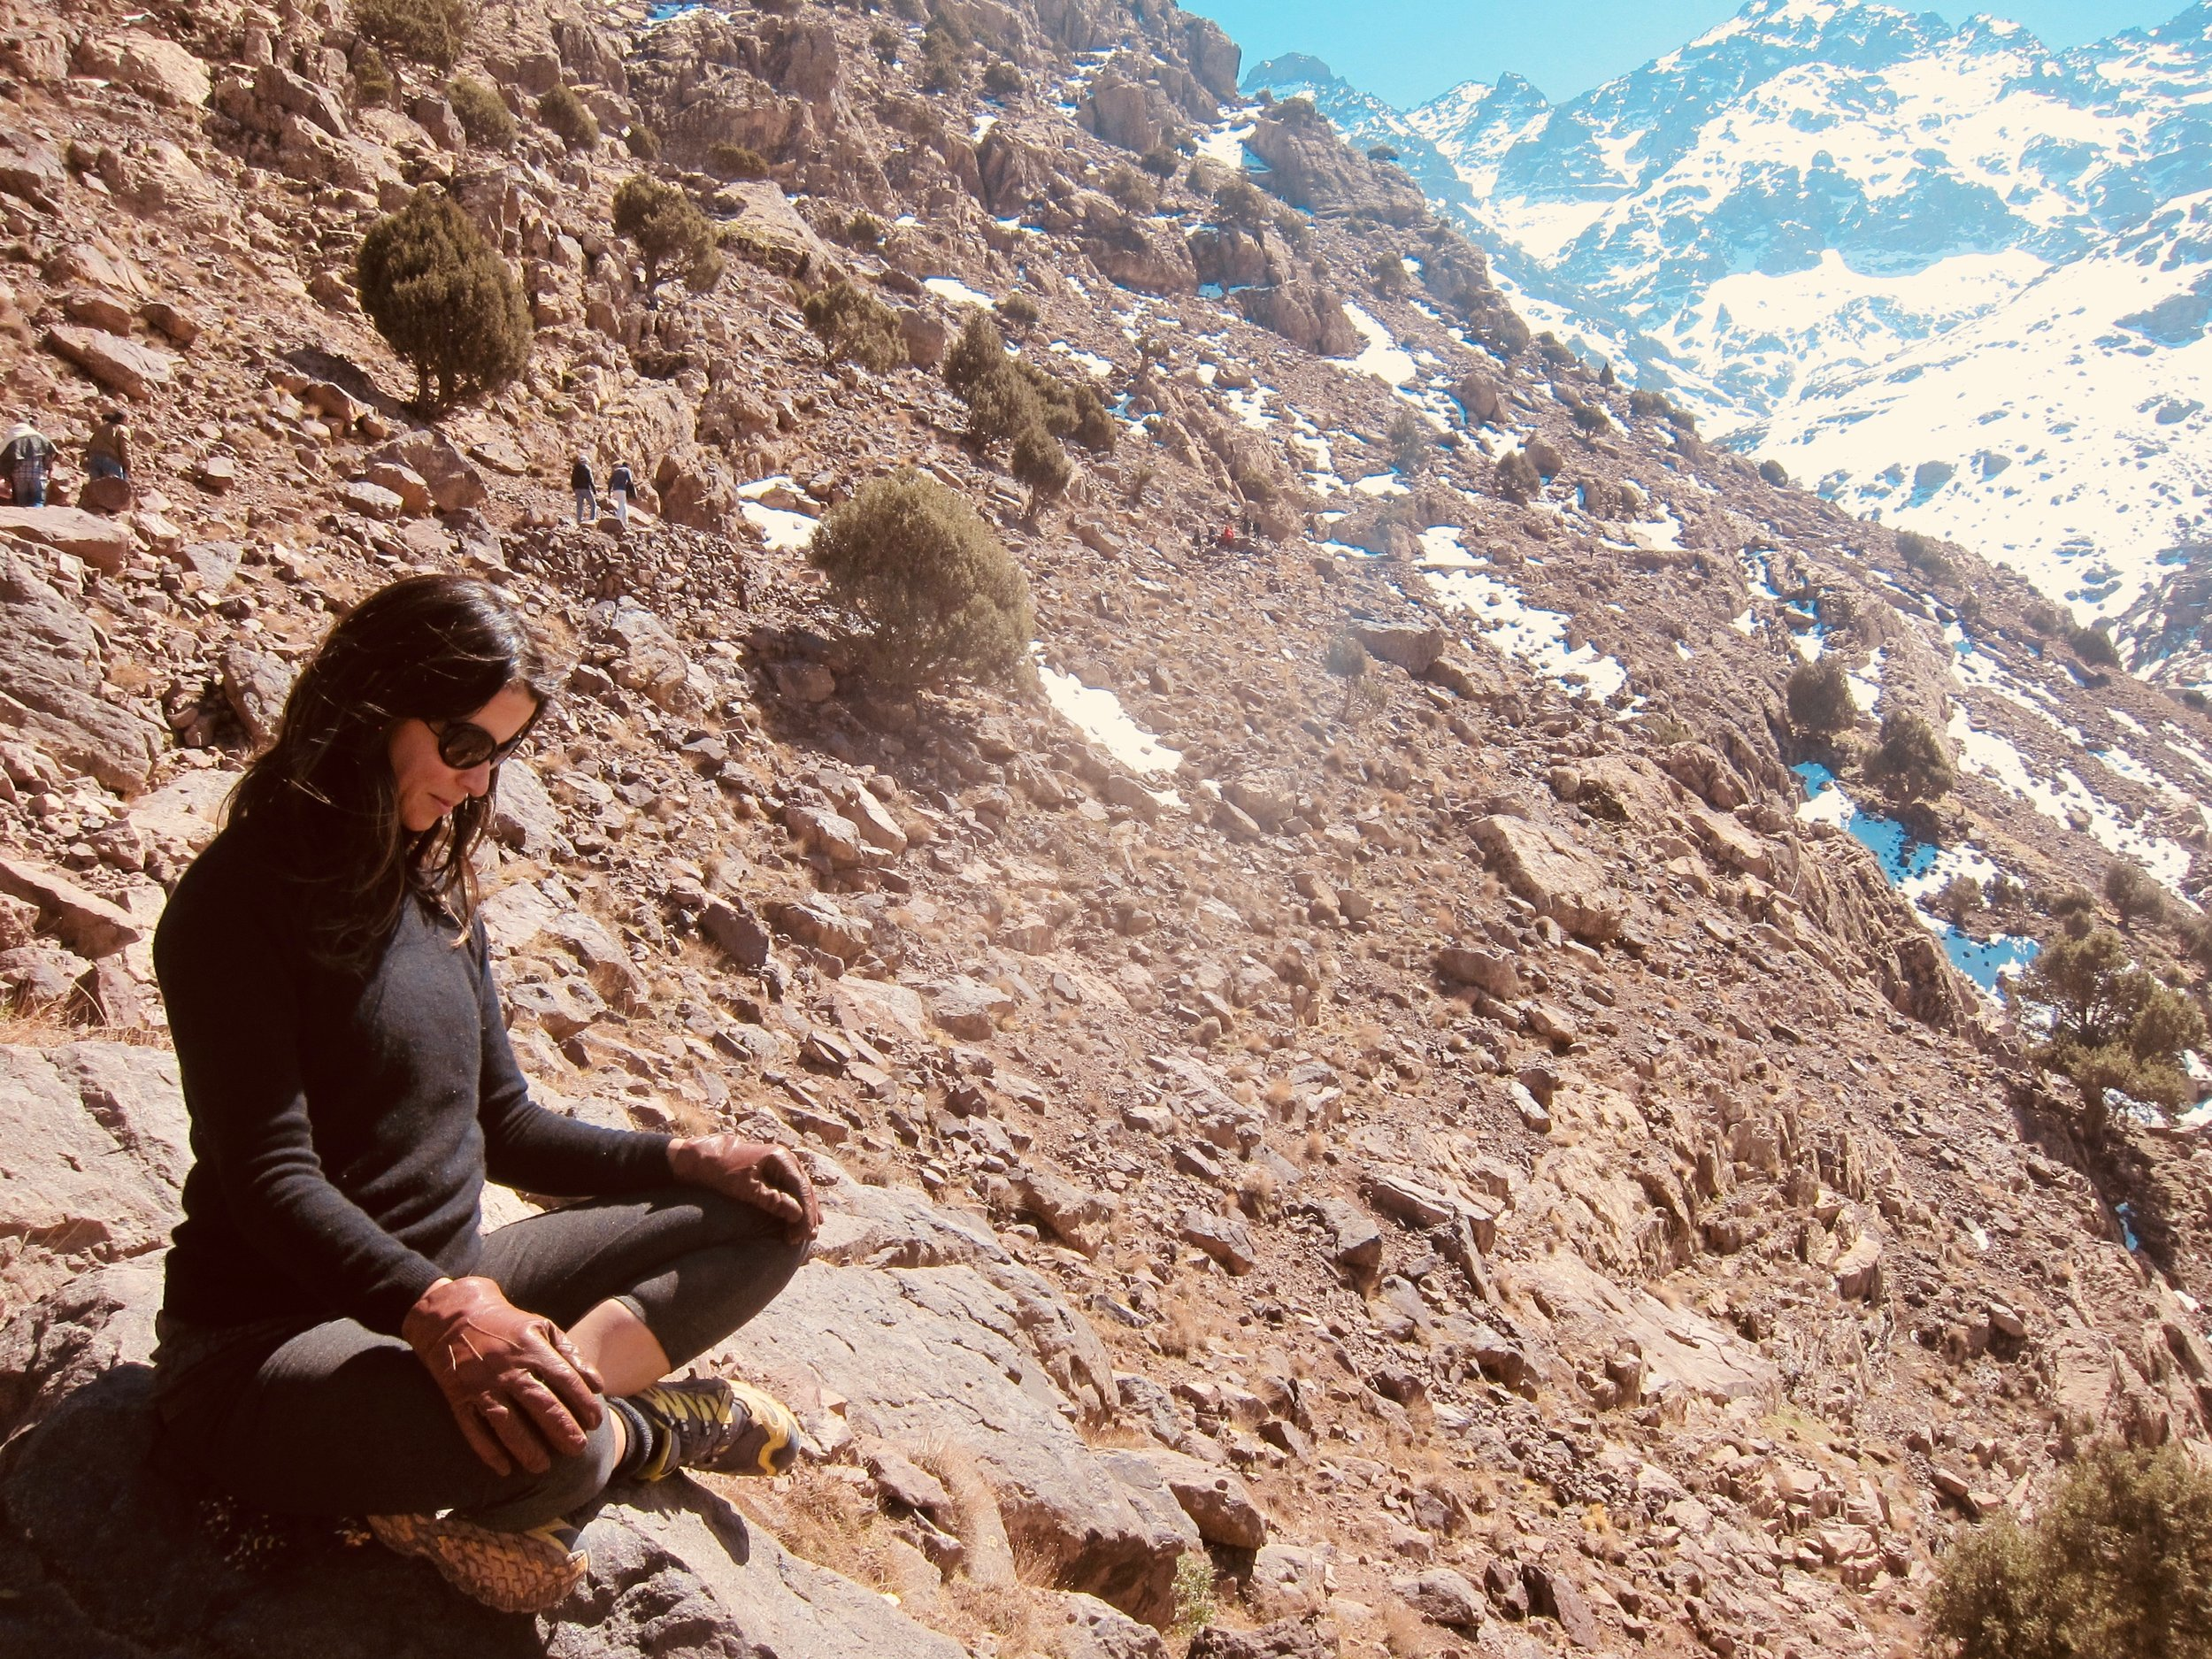 Taking time to be still… High Atlas Mountains, Morocco. I did look up to enjoy the scenery!